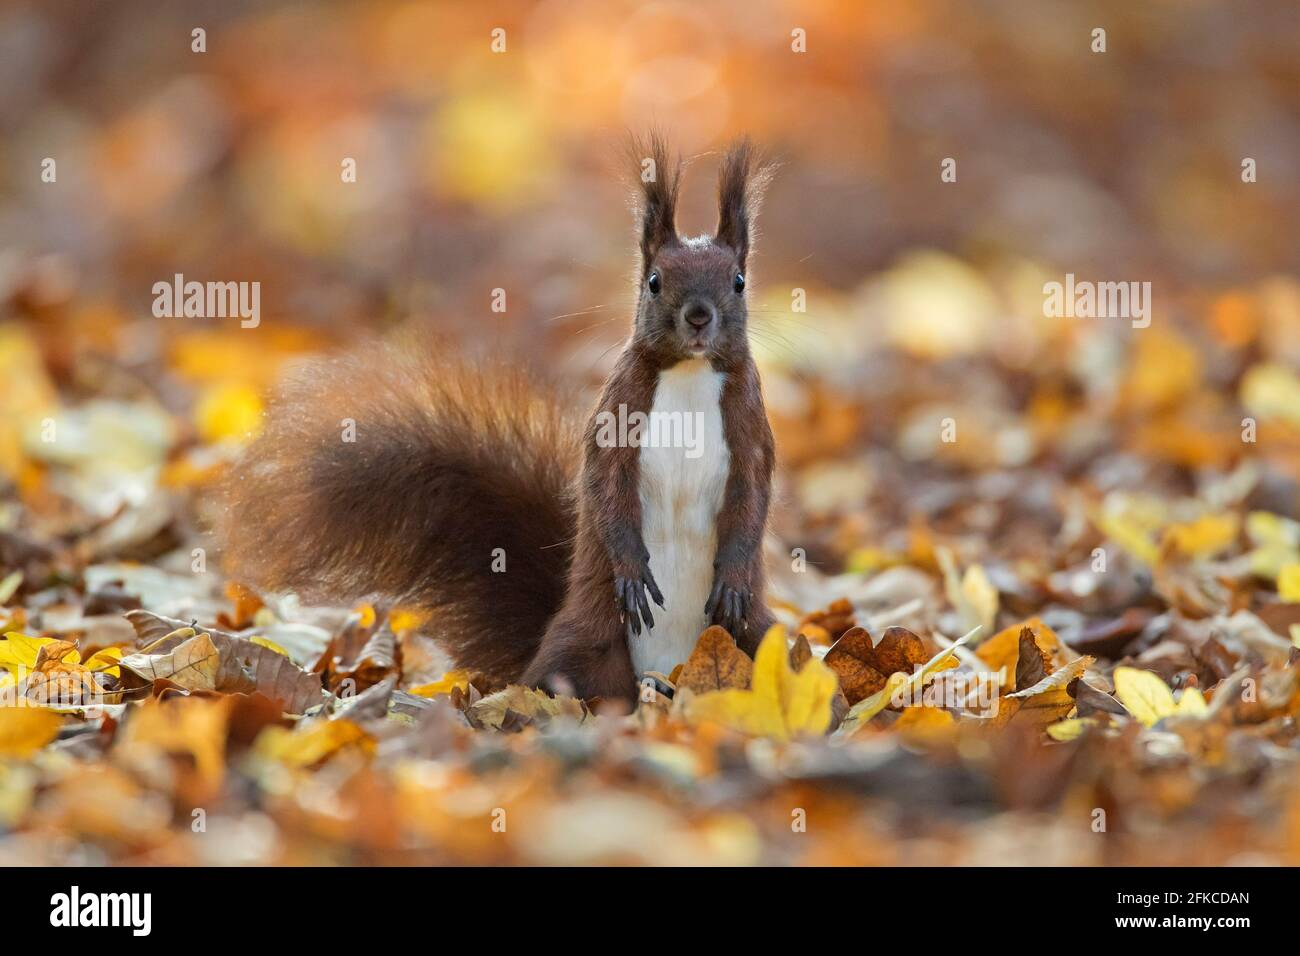 Alert Eurasian red squirrel (Sciurus vulgaris) looking for danger on the ground in leaf litter on the forest floor in autumn woodland Stock Photo